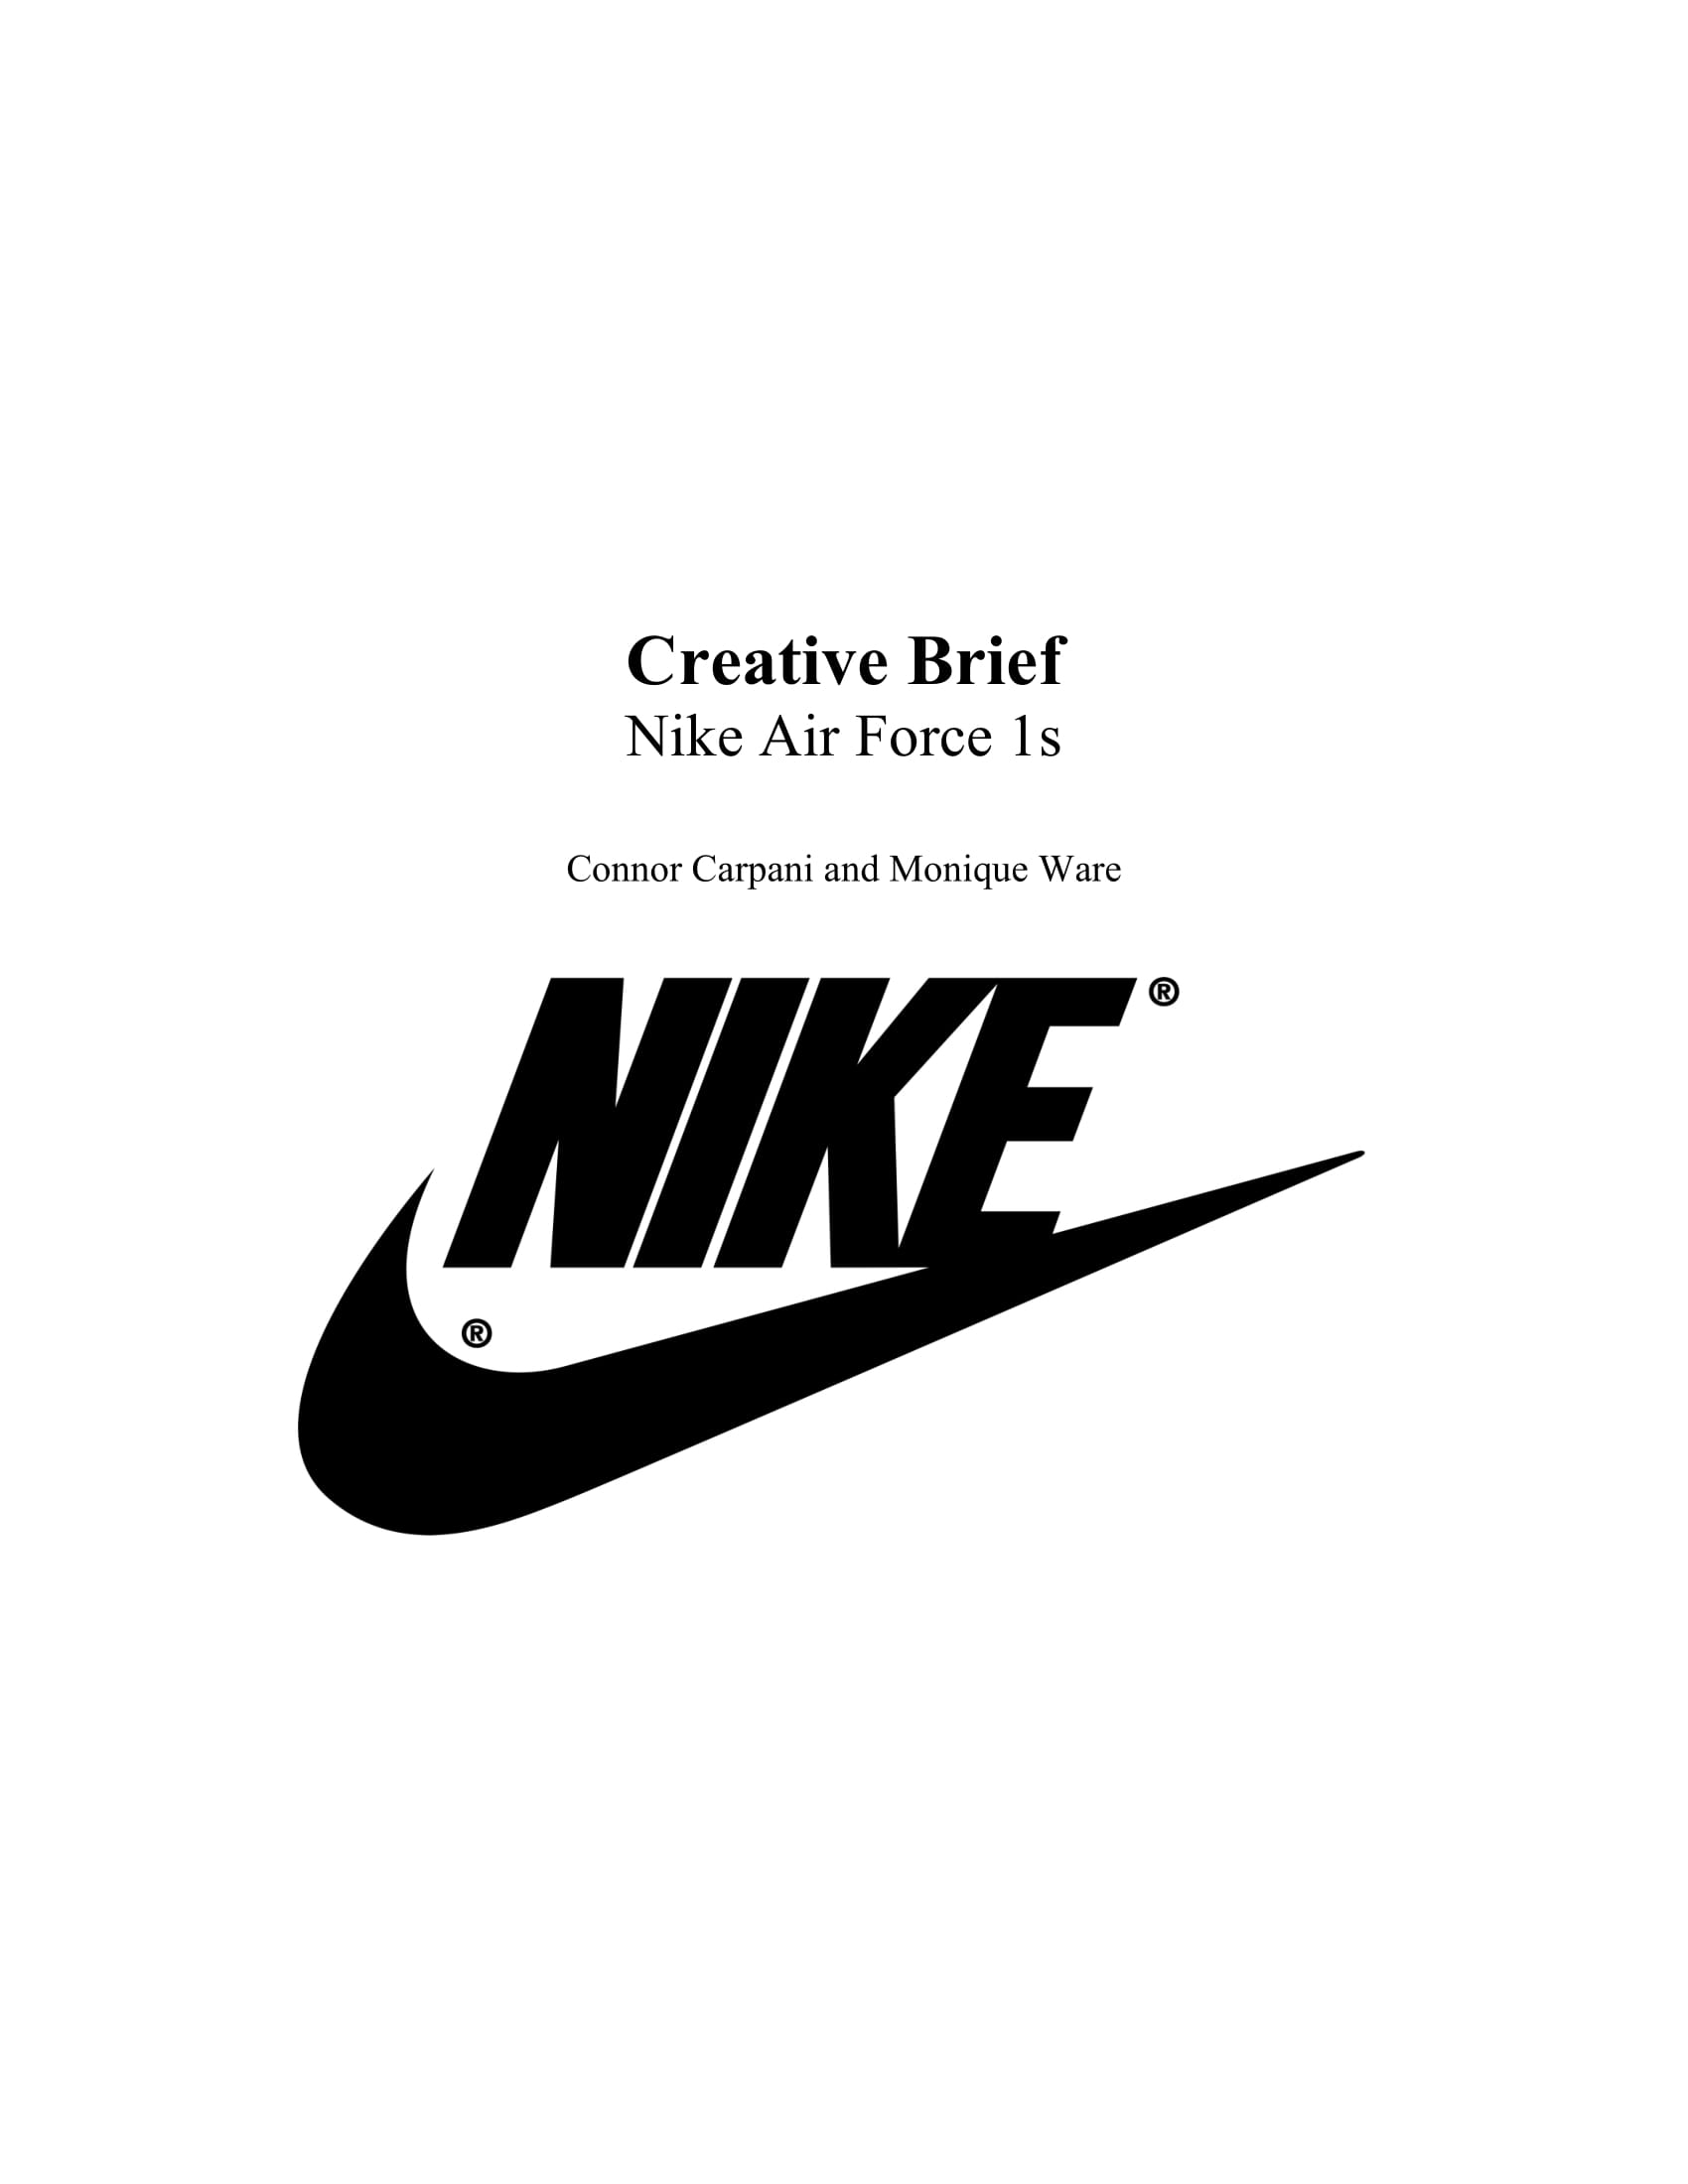 nike creative project brief example